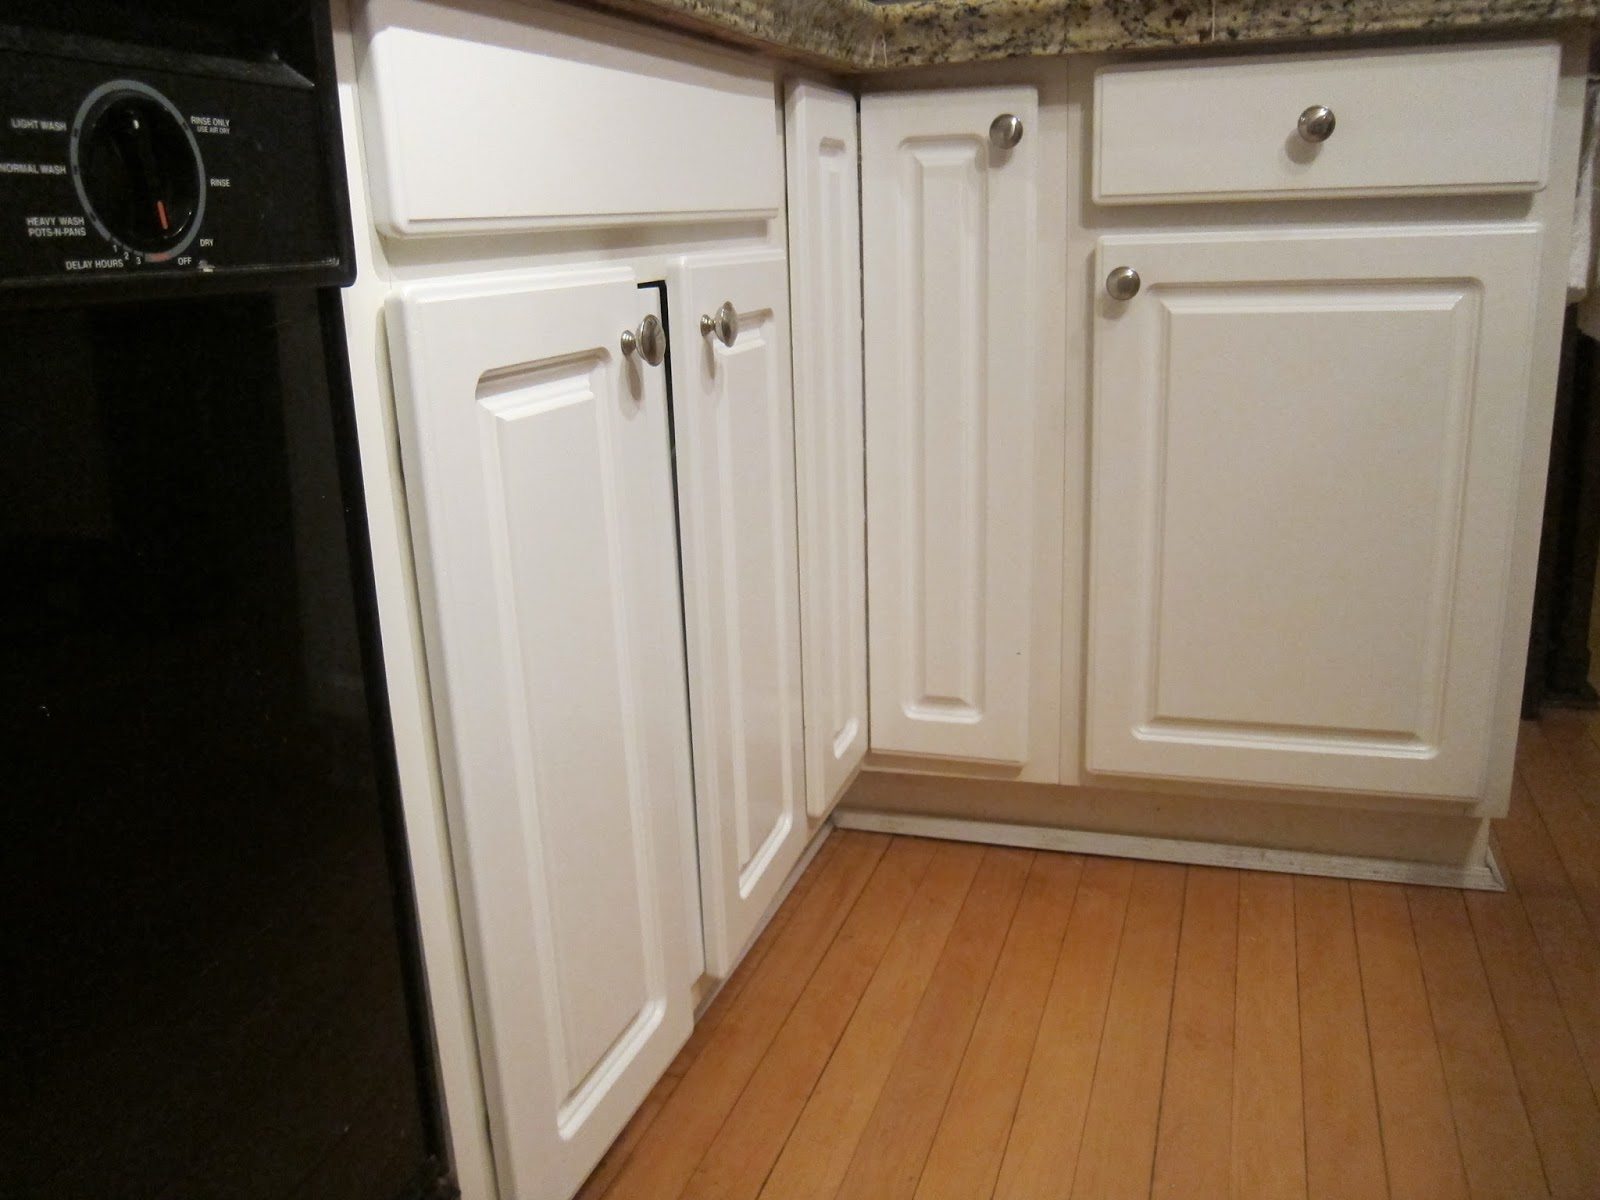 Refinishing Particle Board Cabinet Doors | www.resnooze.com